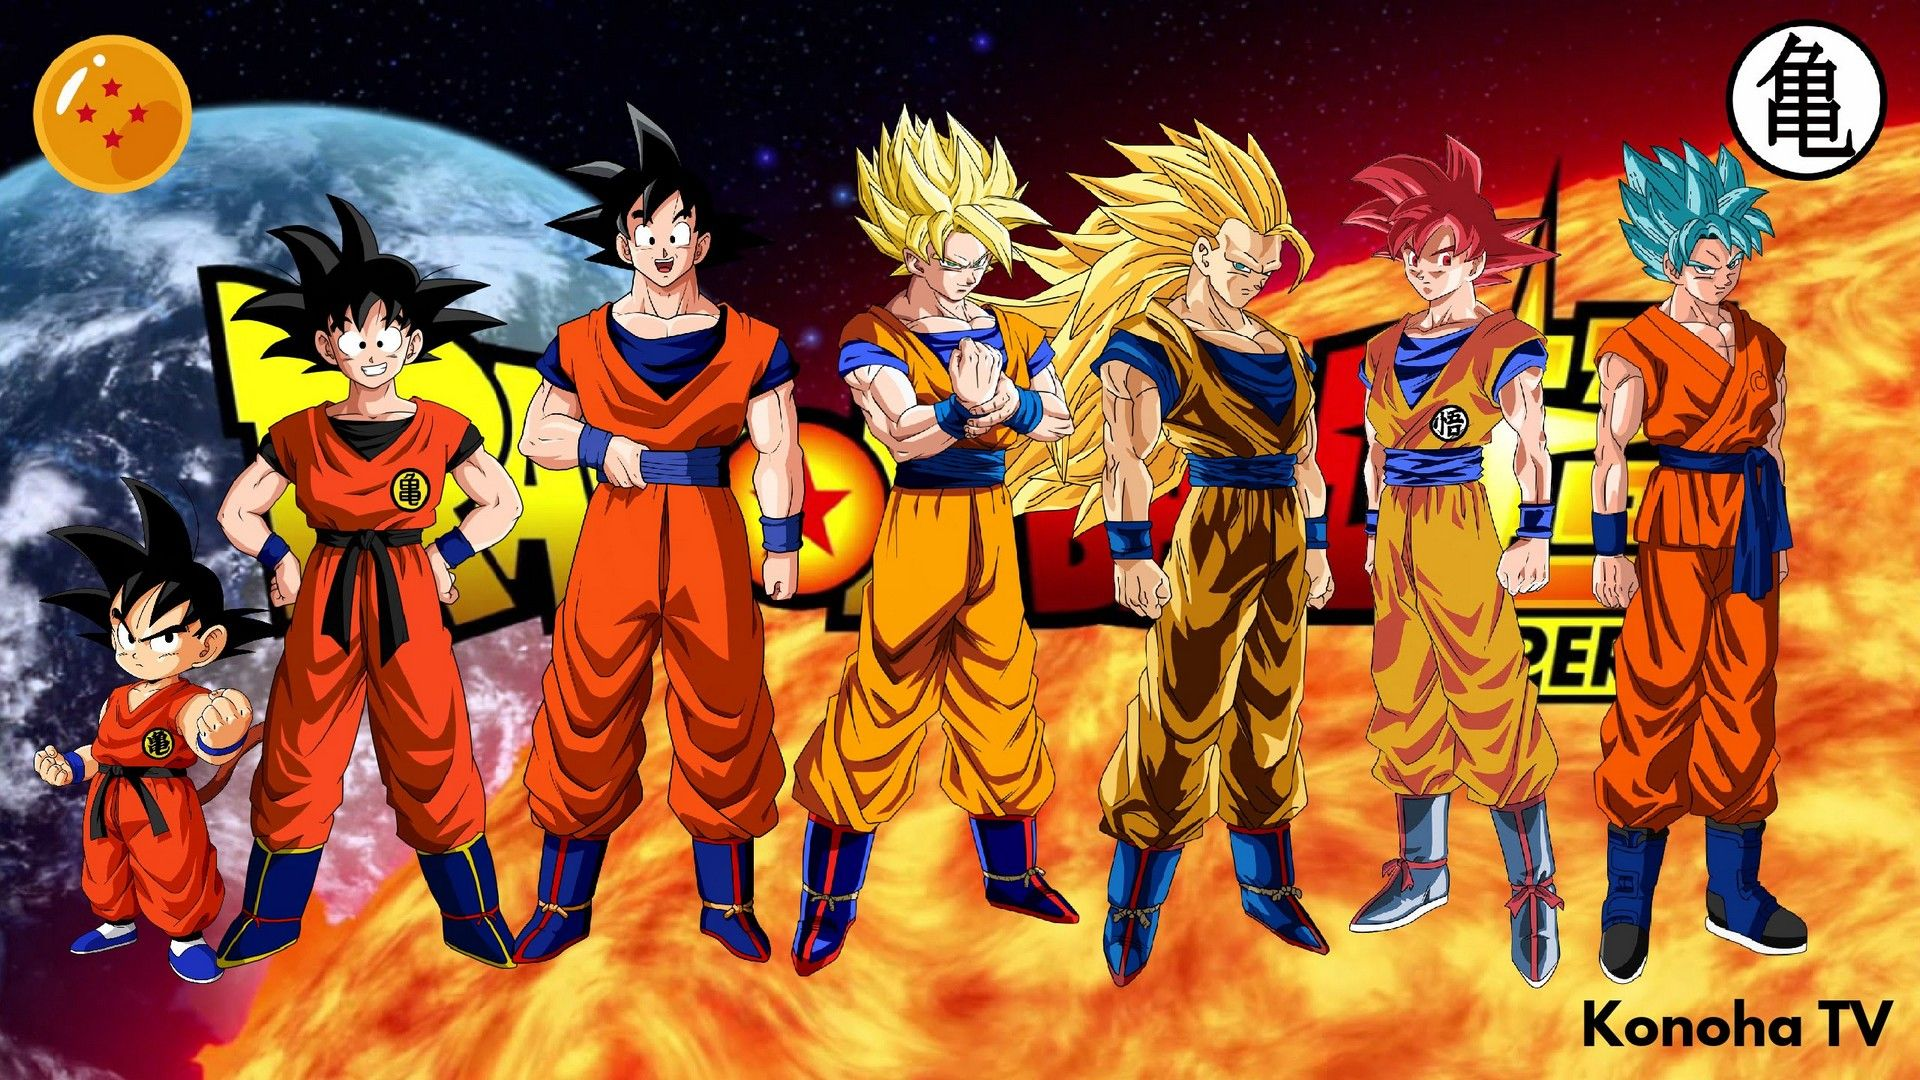 Goku All Form Dragon Ball Super Wallpaper Imagenes De Goku